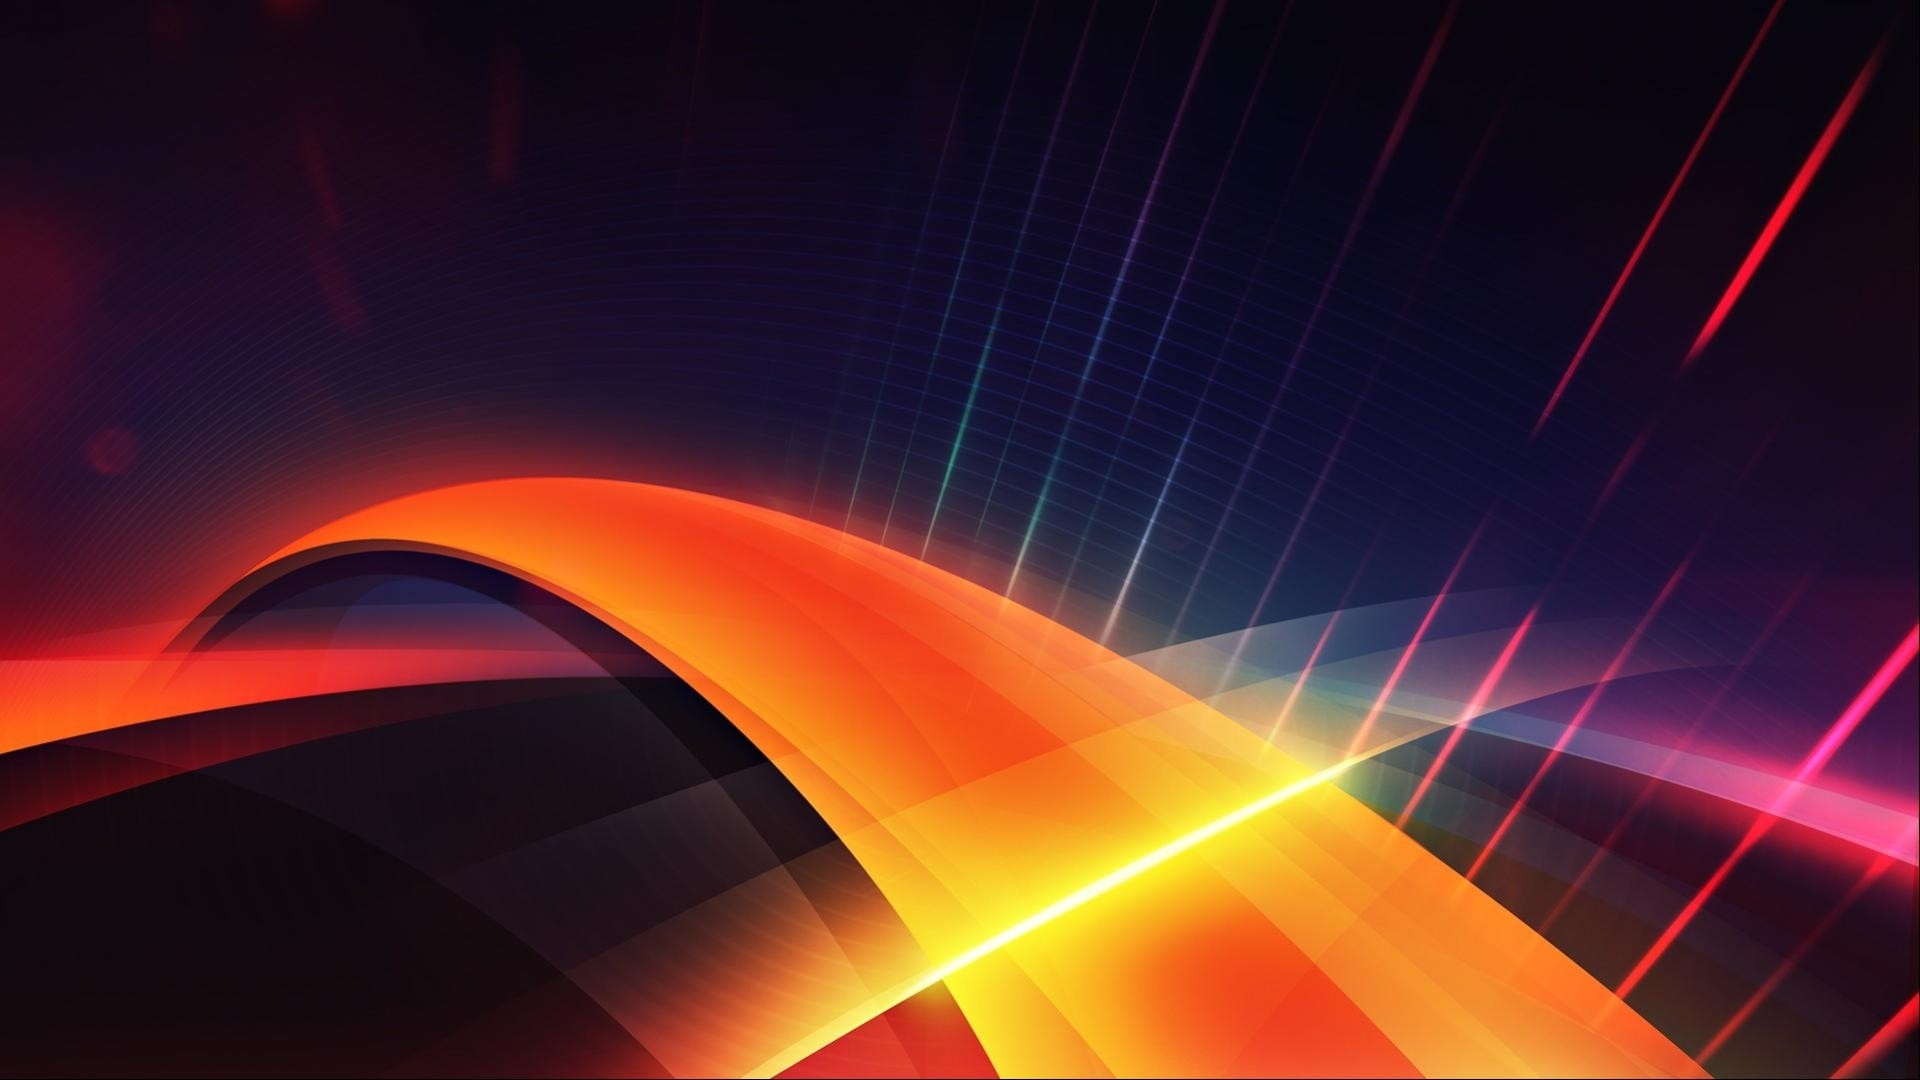 abstract lines wallpapers hd